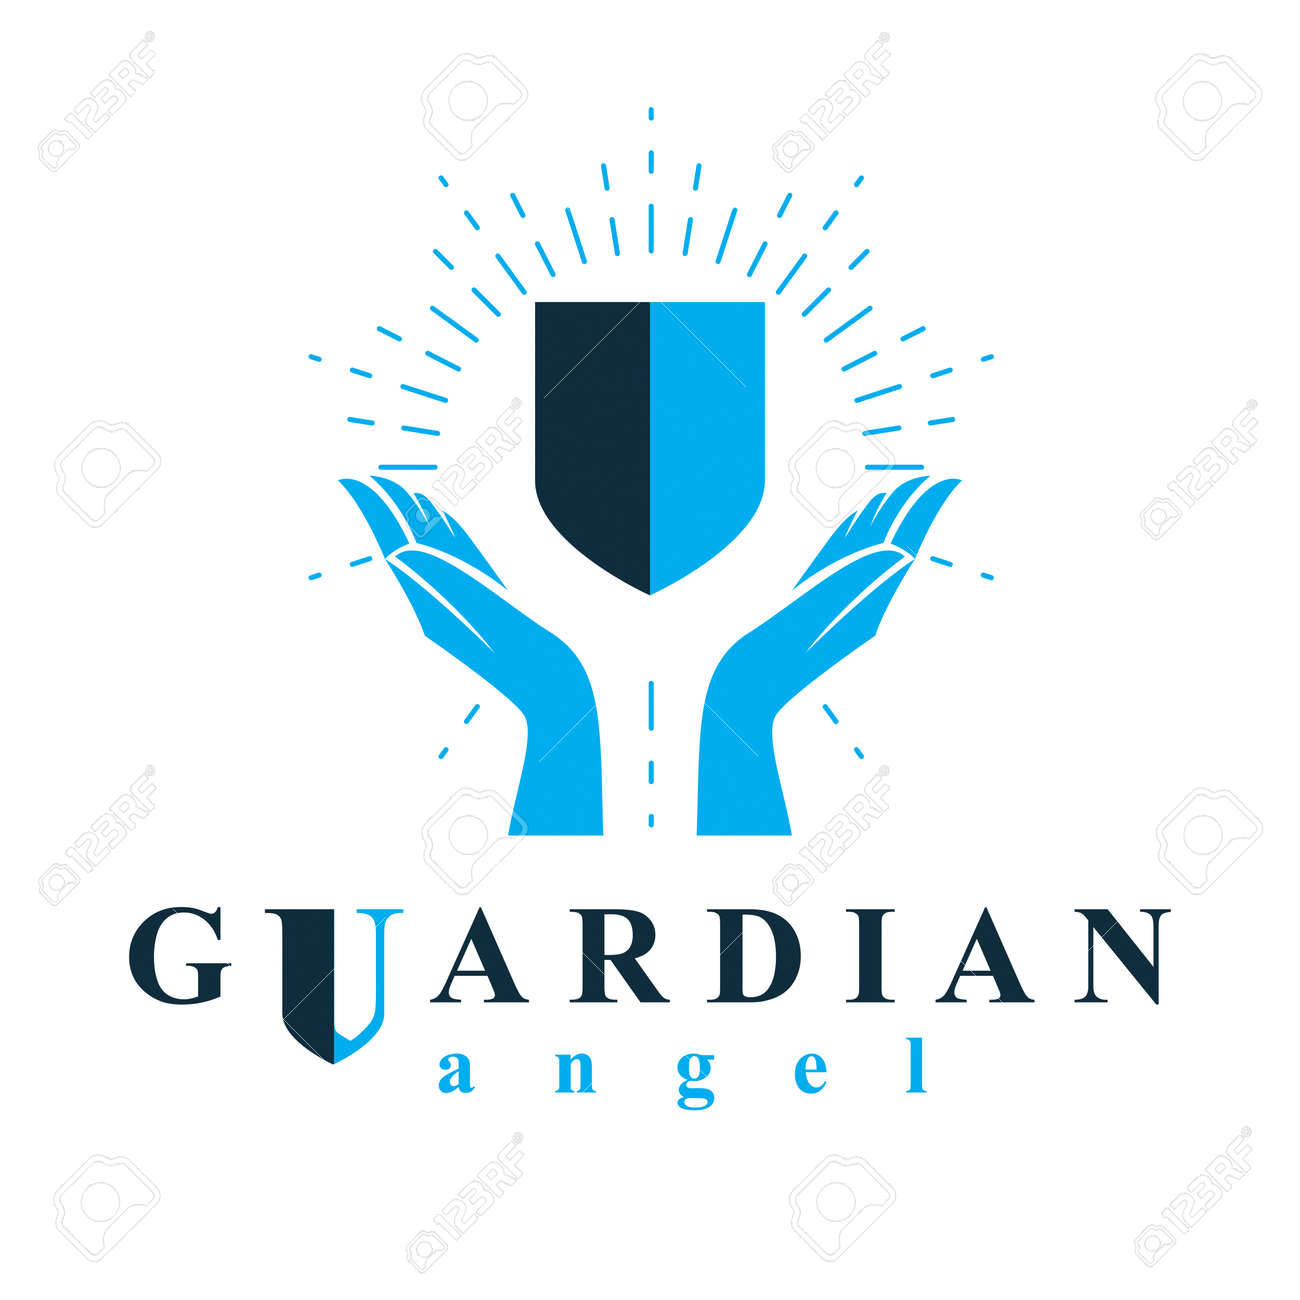 Shield vector graphic illustration, safety and security metaphor symbol. Guardian angel vector abstract emblem. - 154928832